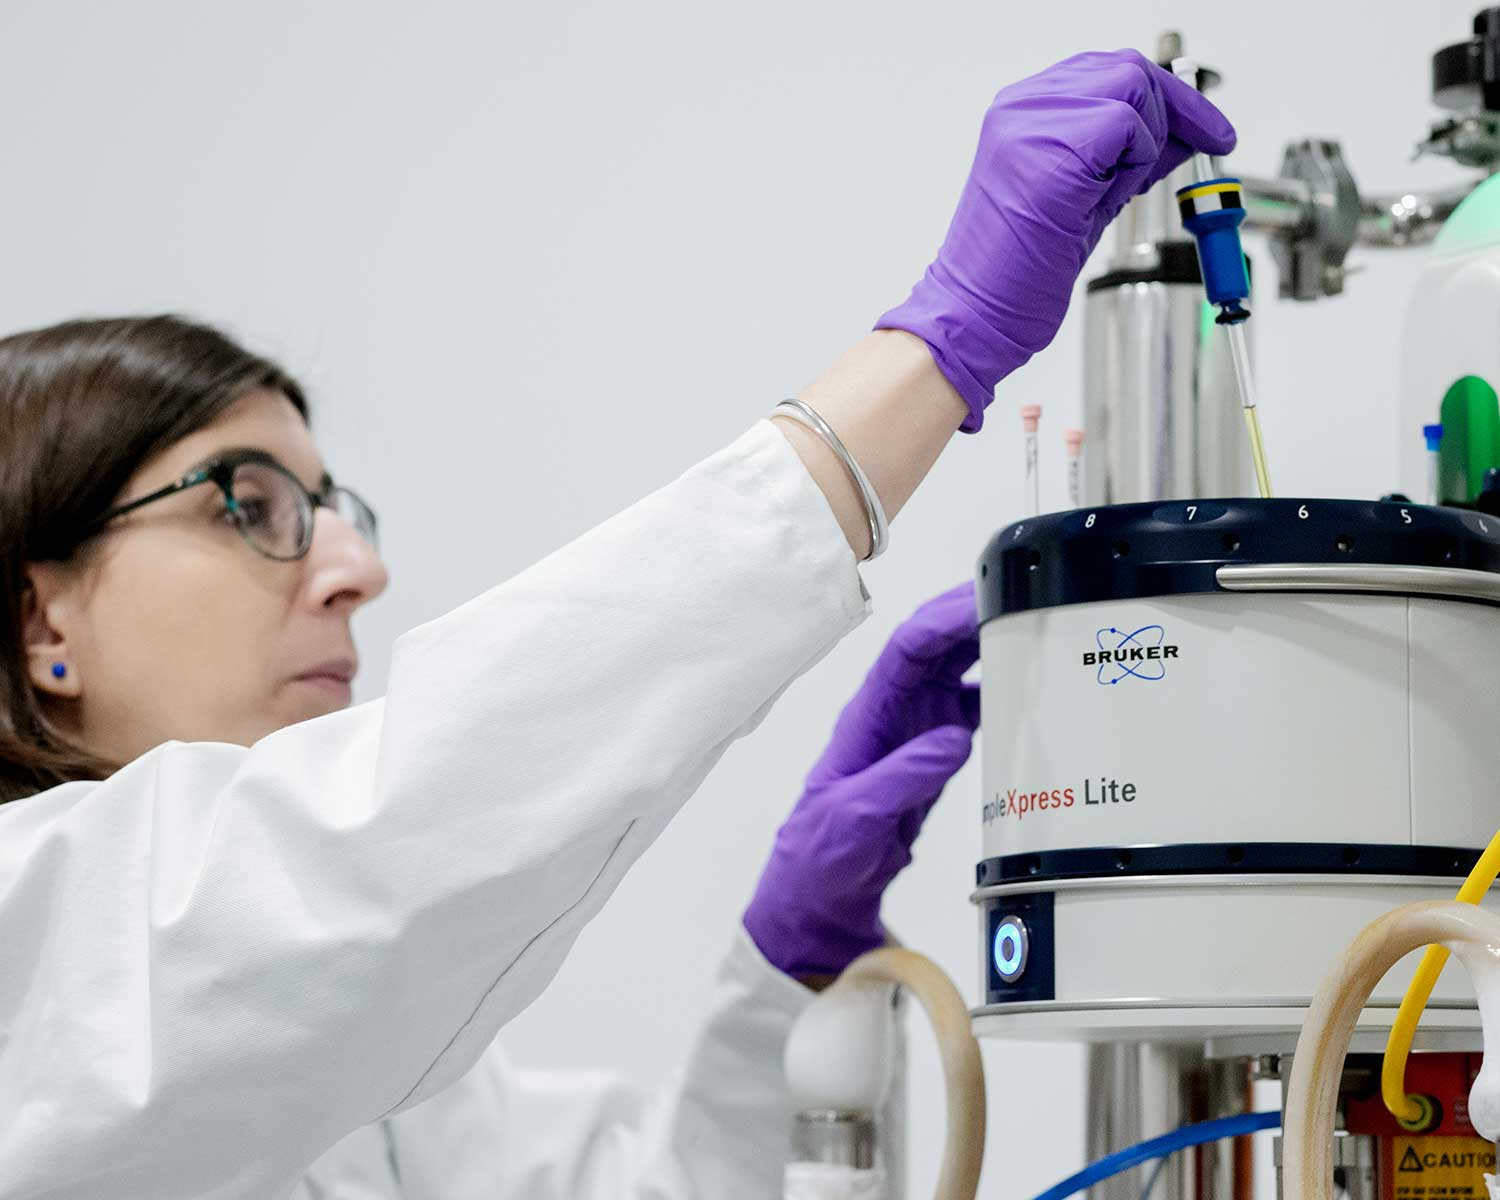 advanced materials research at SPECIFIC POLYMERS